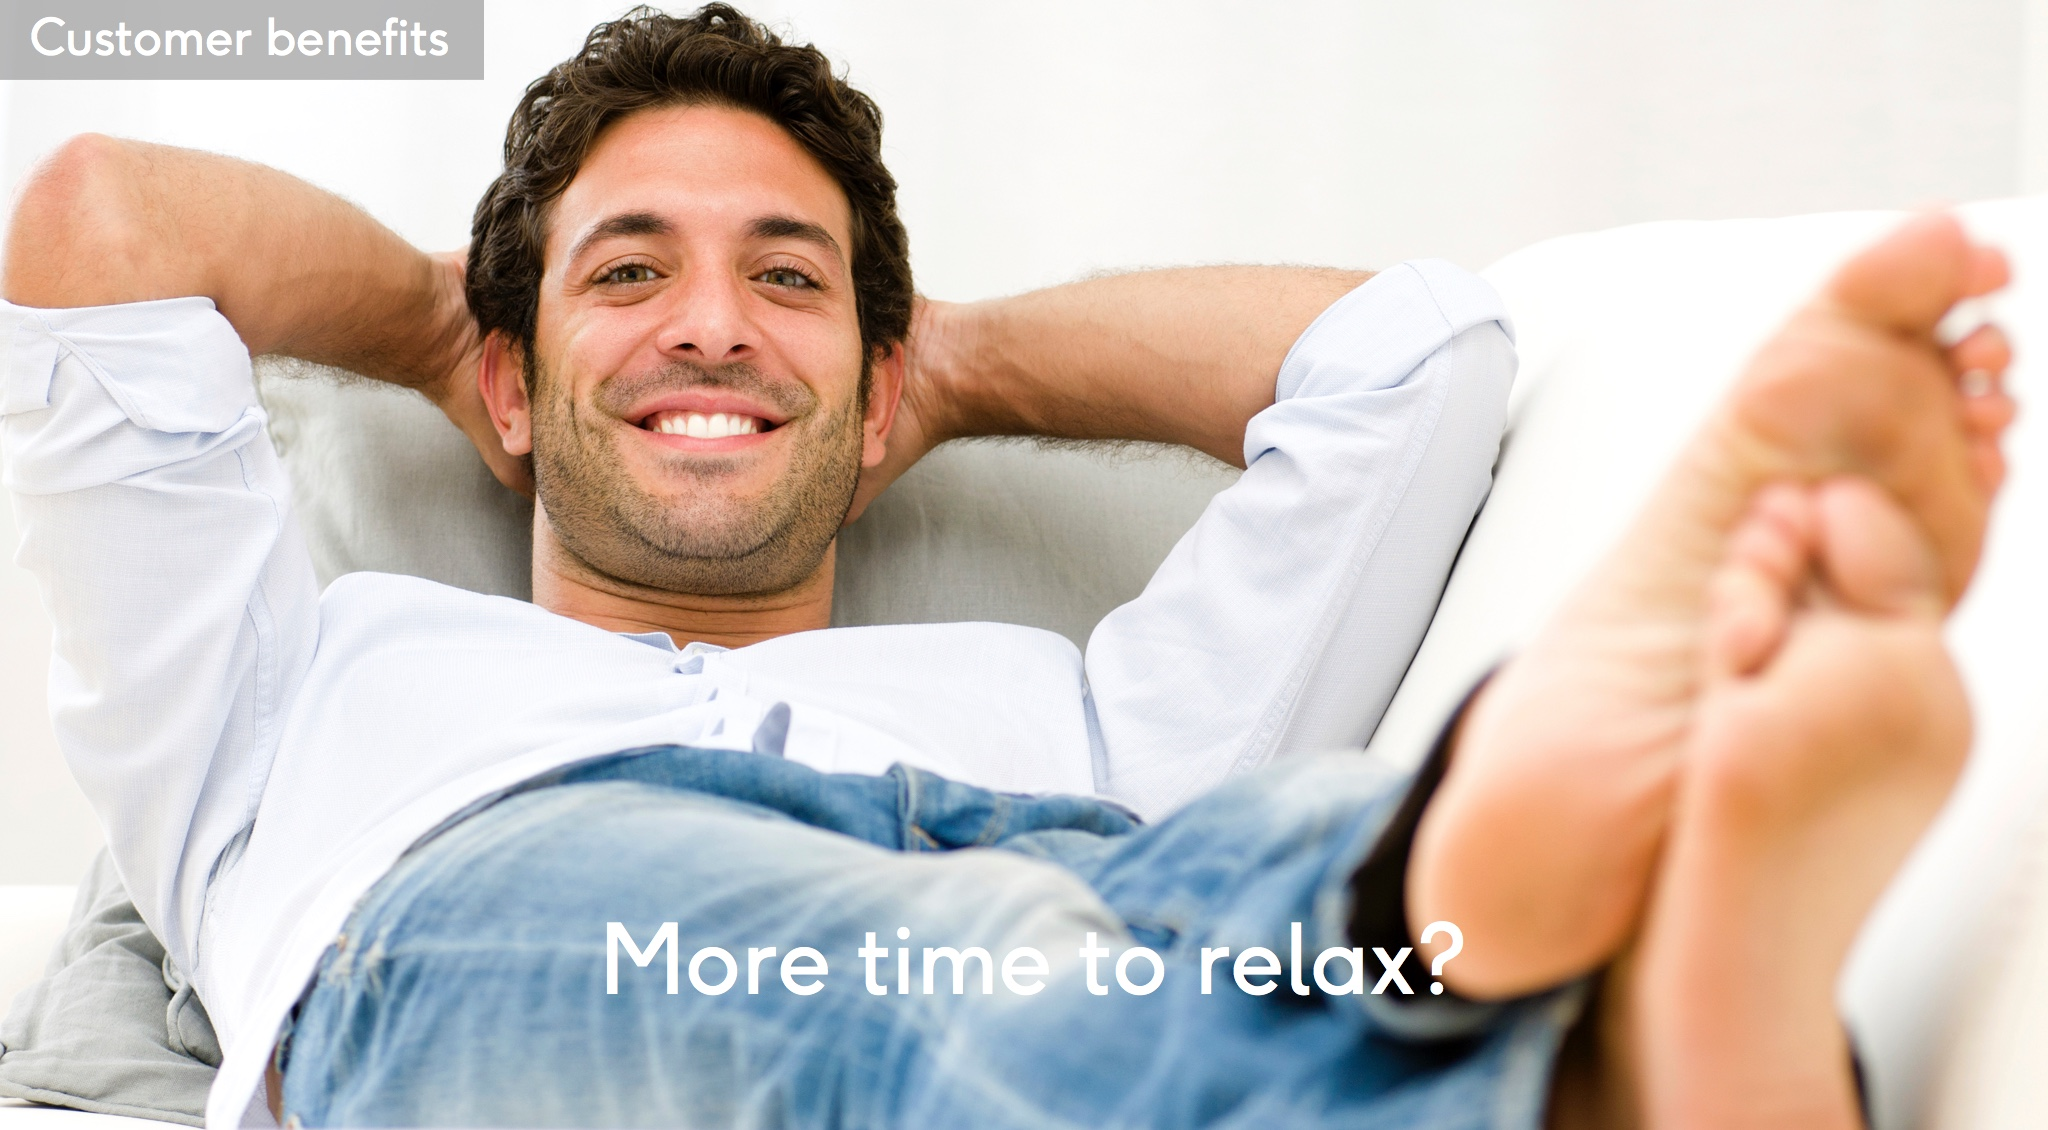 More time to relax?